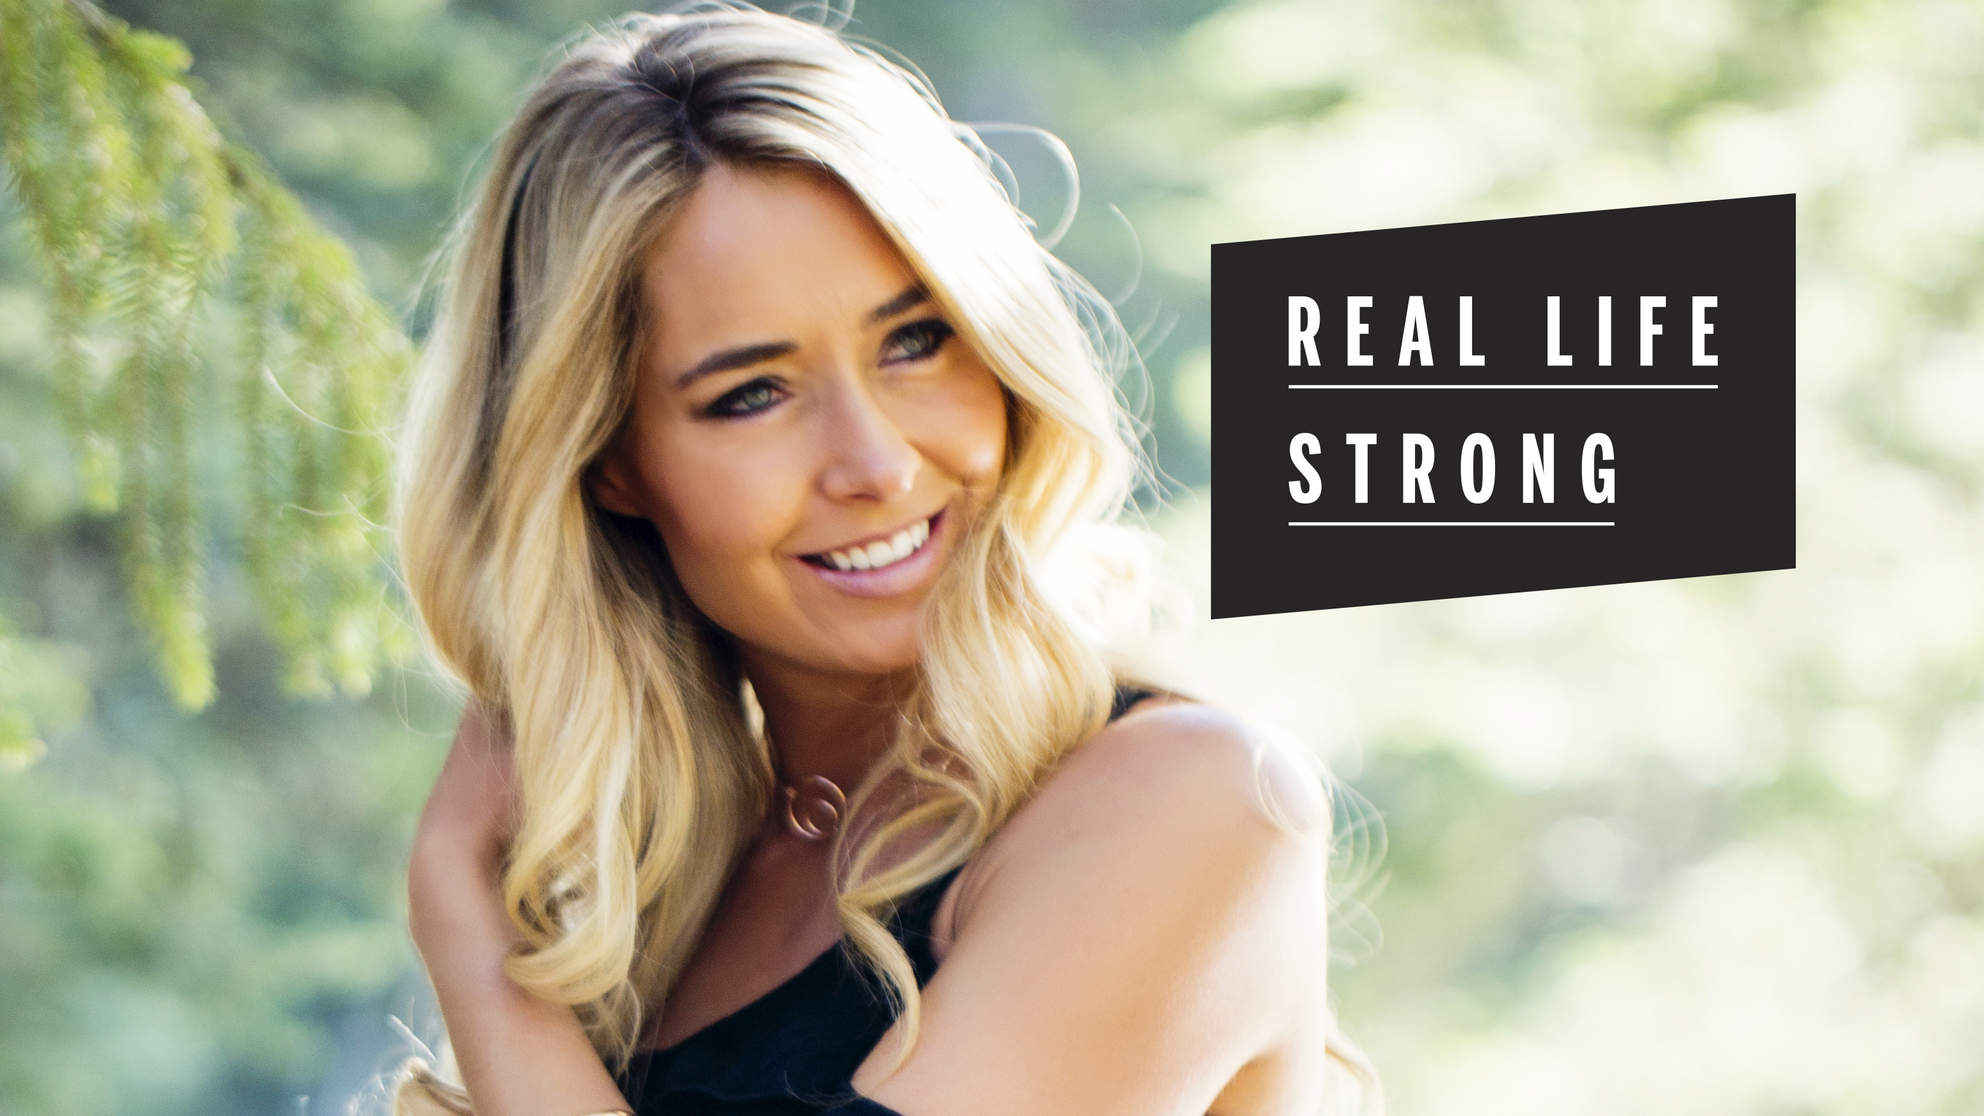 danette-may-real-life-strong